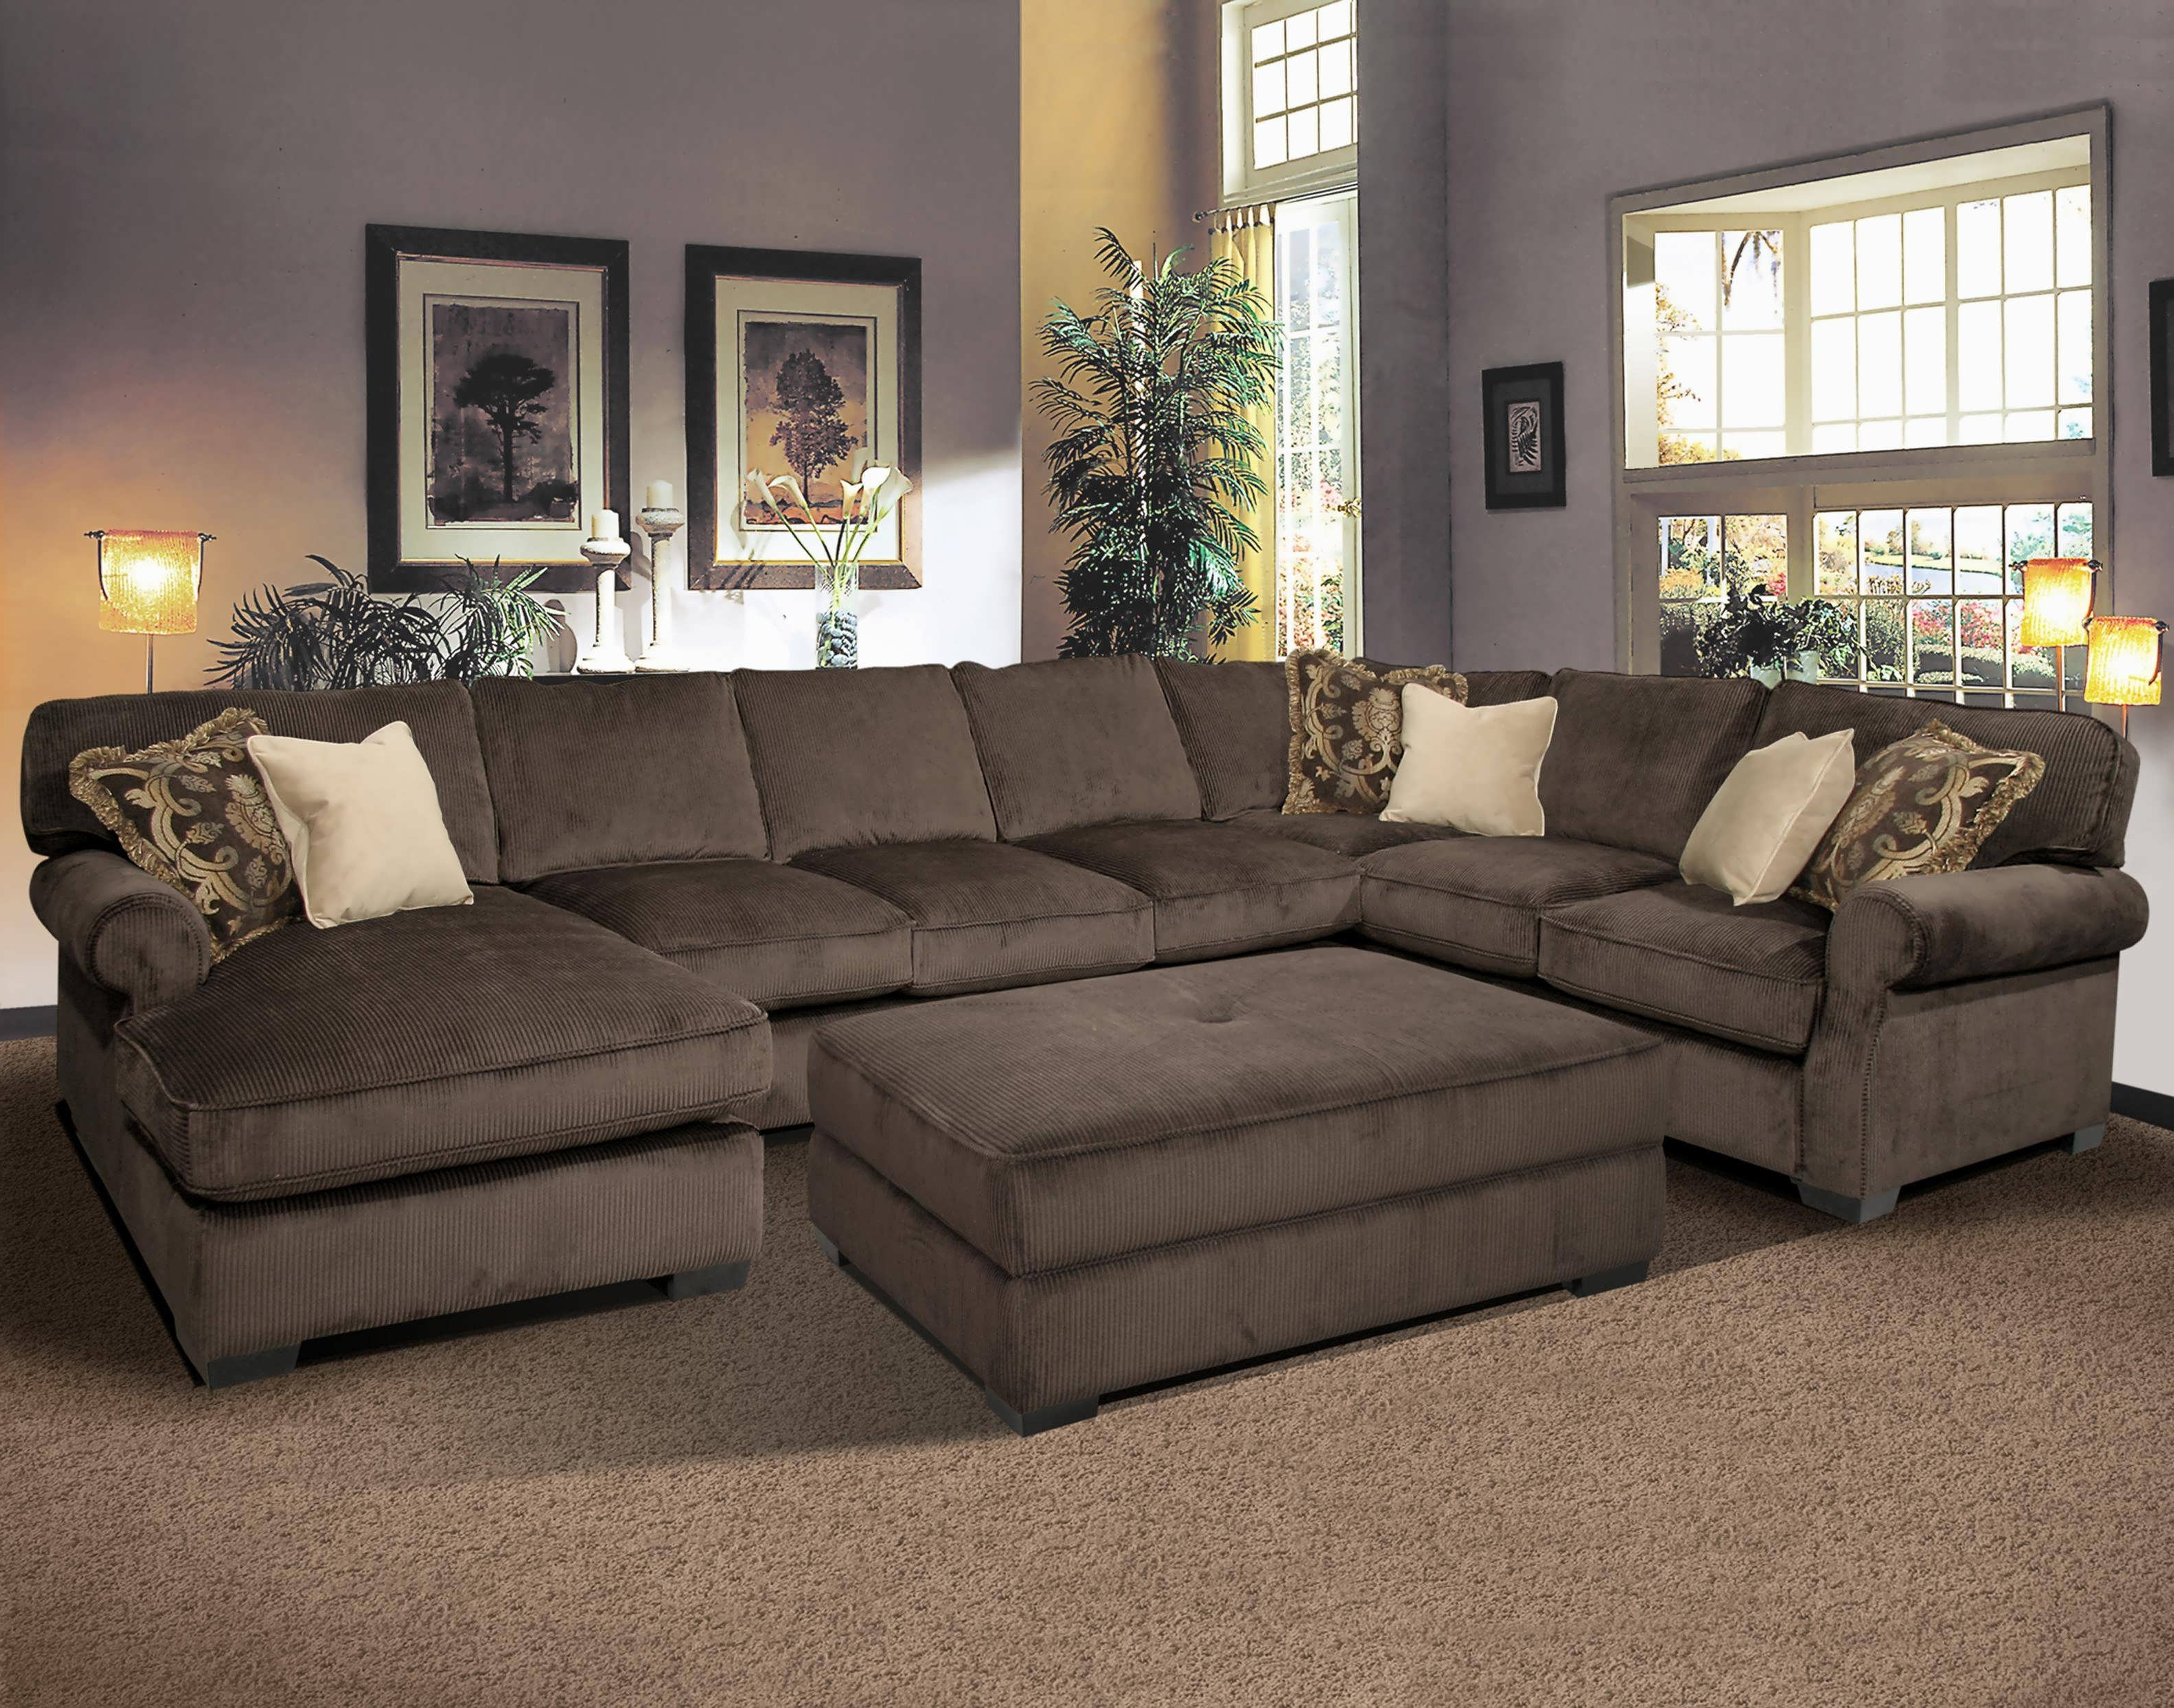 Sleeper Sofa Sectionals With Chaise Throughout Most Current Sofa : Leather Reclining Sectional 4 Piece Sectional Sofa (View 6 of 15)